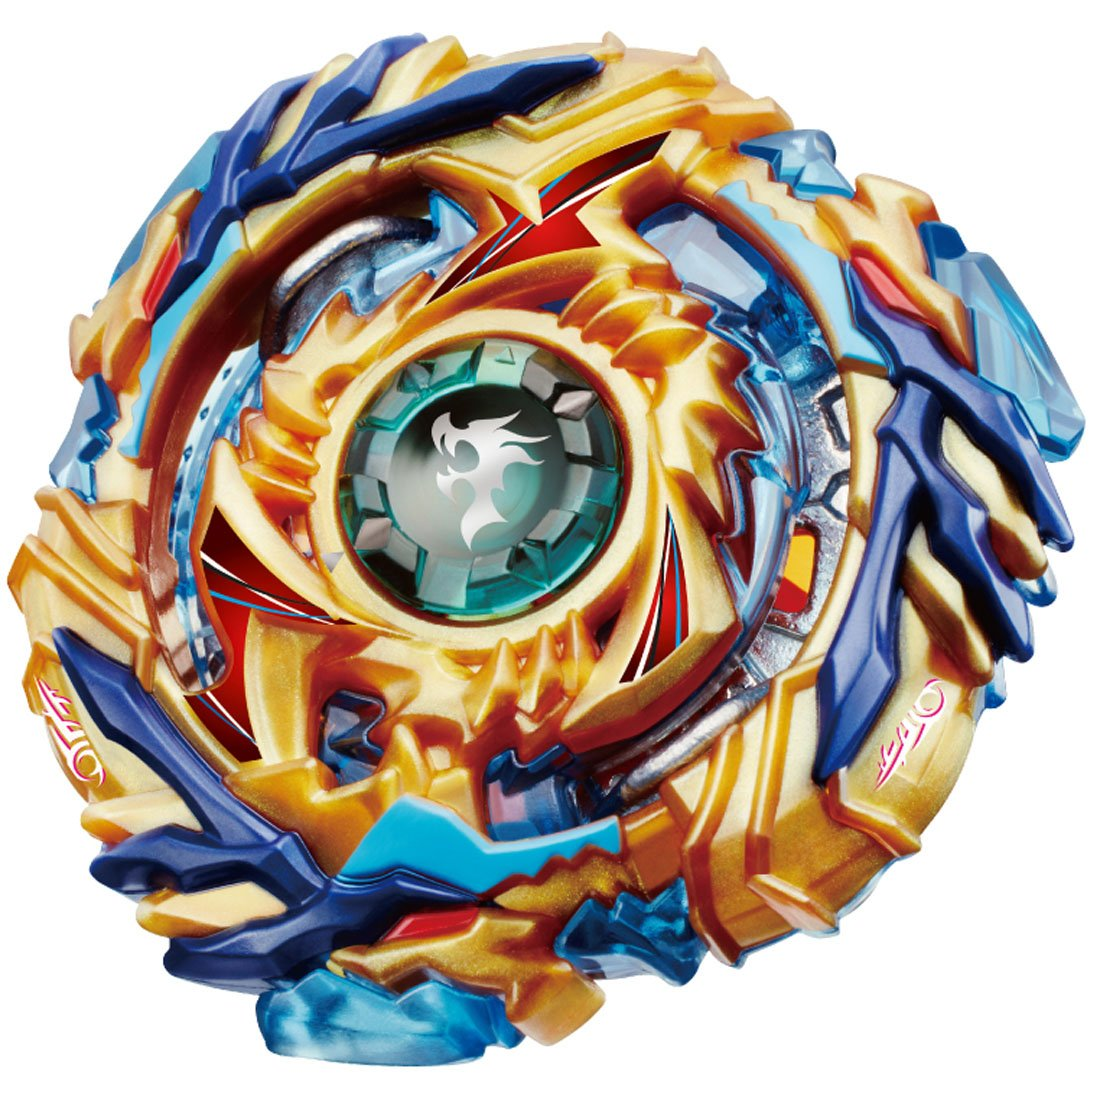 Top 10 Best Beyblade Toys in the World 2020 - Buyer's Guide 8